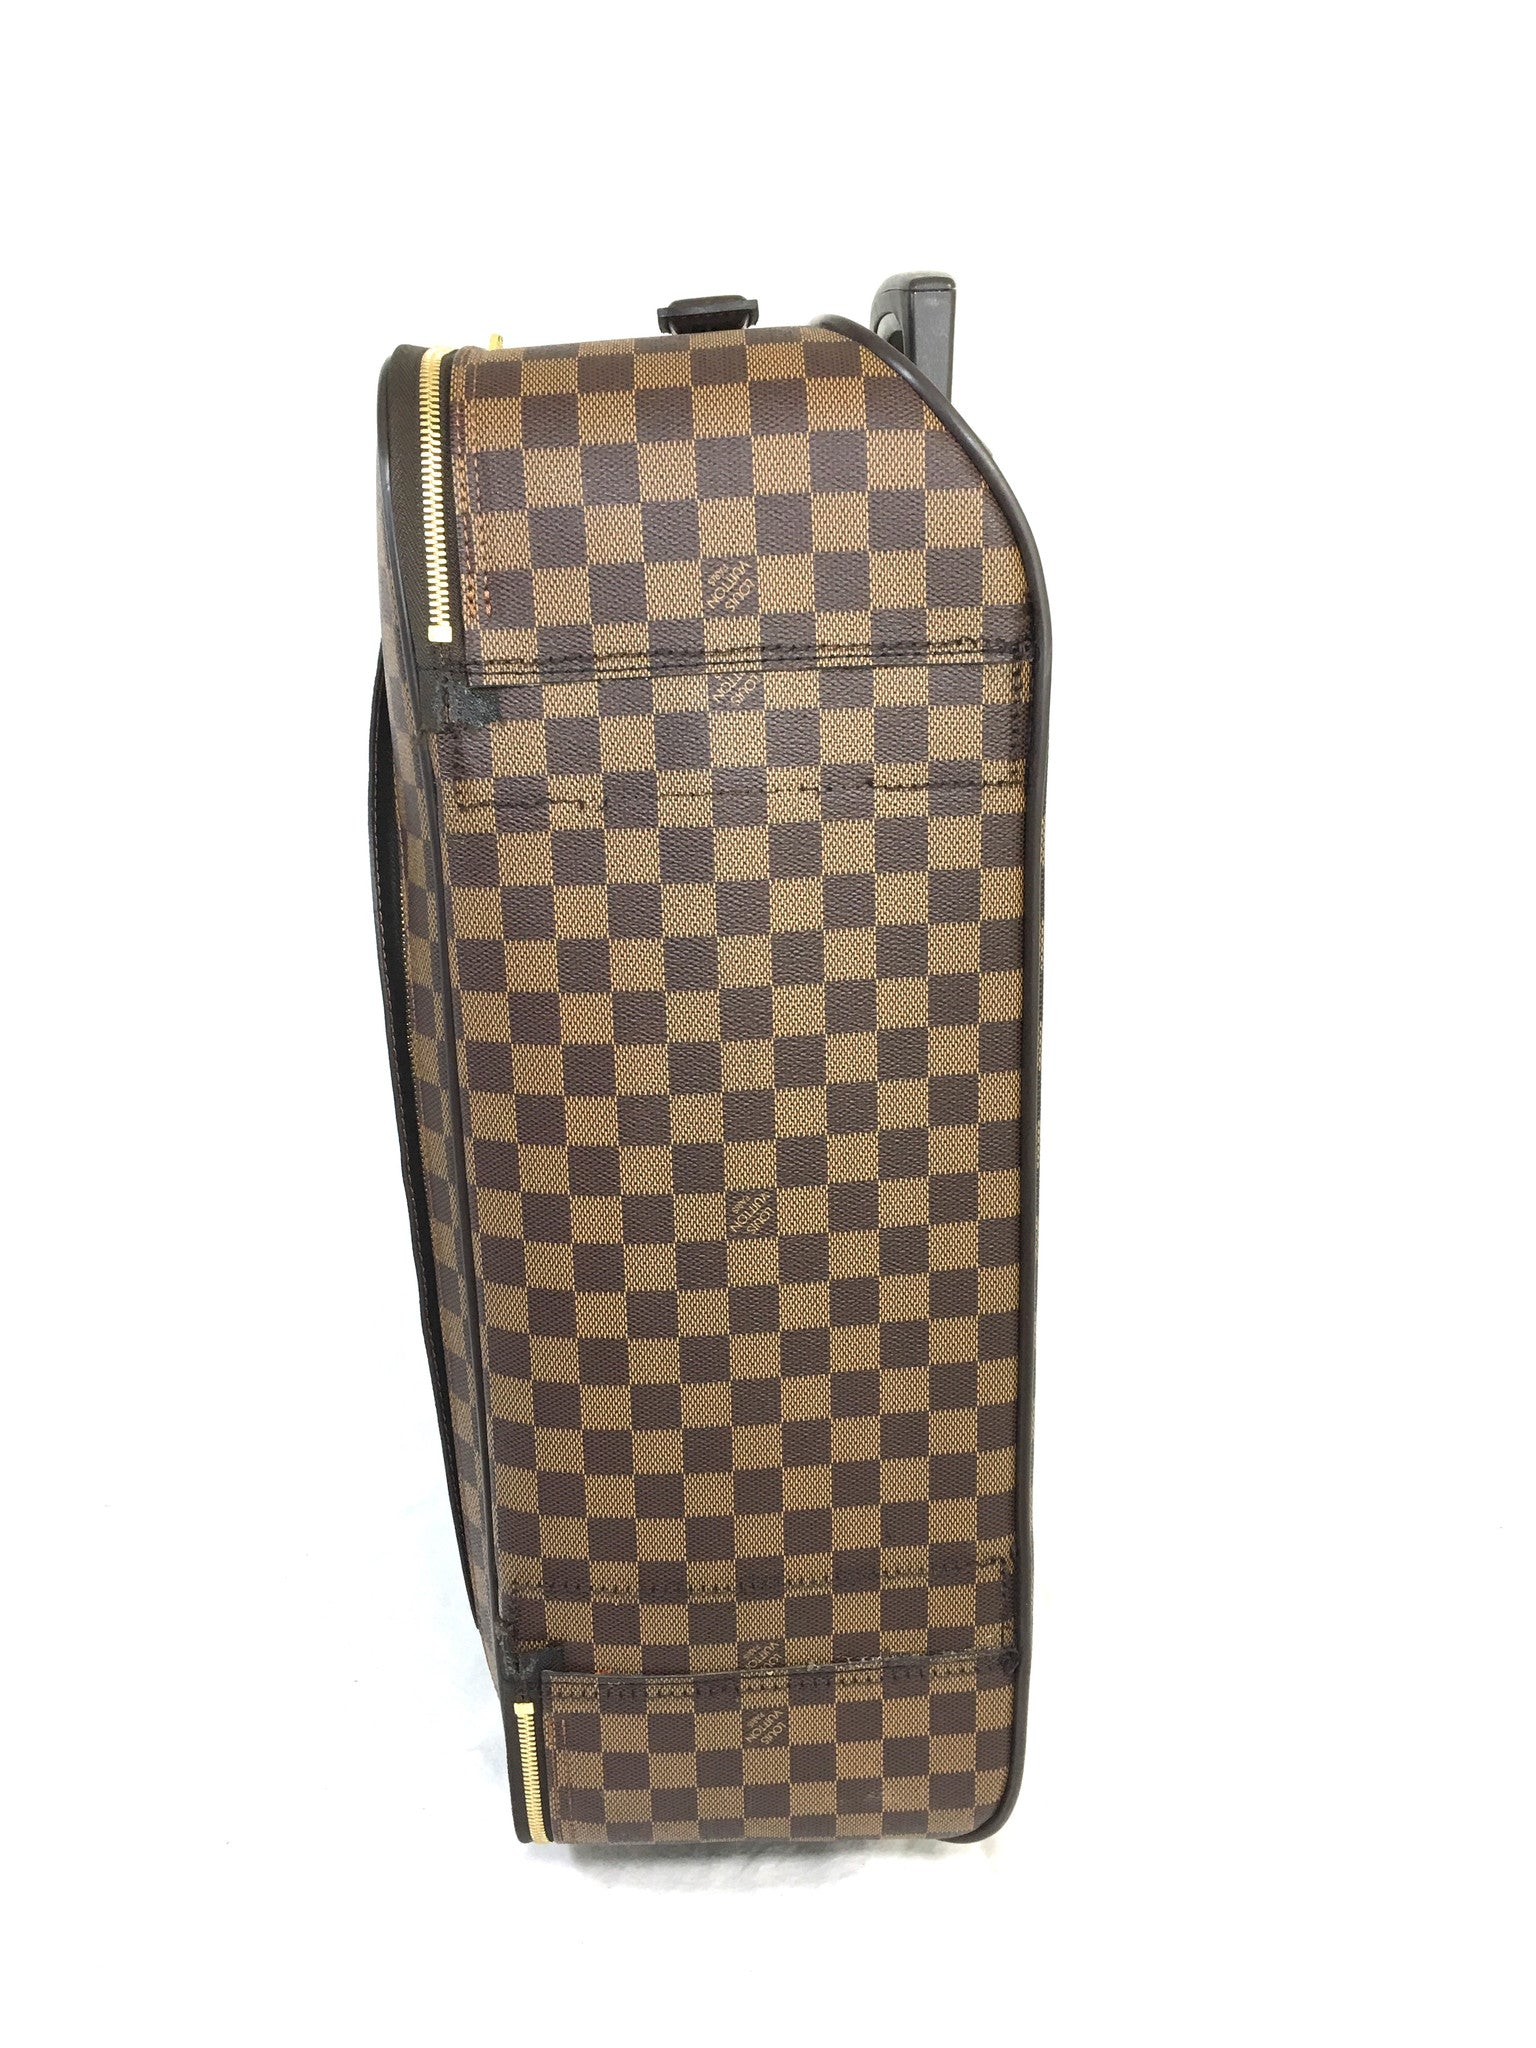 LOUIS VUITTON Damier Ebene Pegase 55 Suitcase Roller Luggage